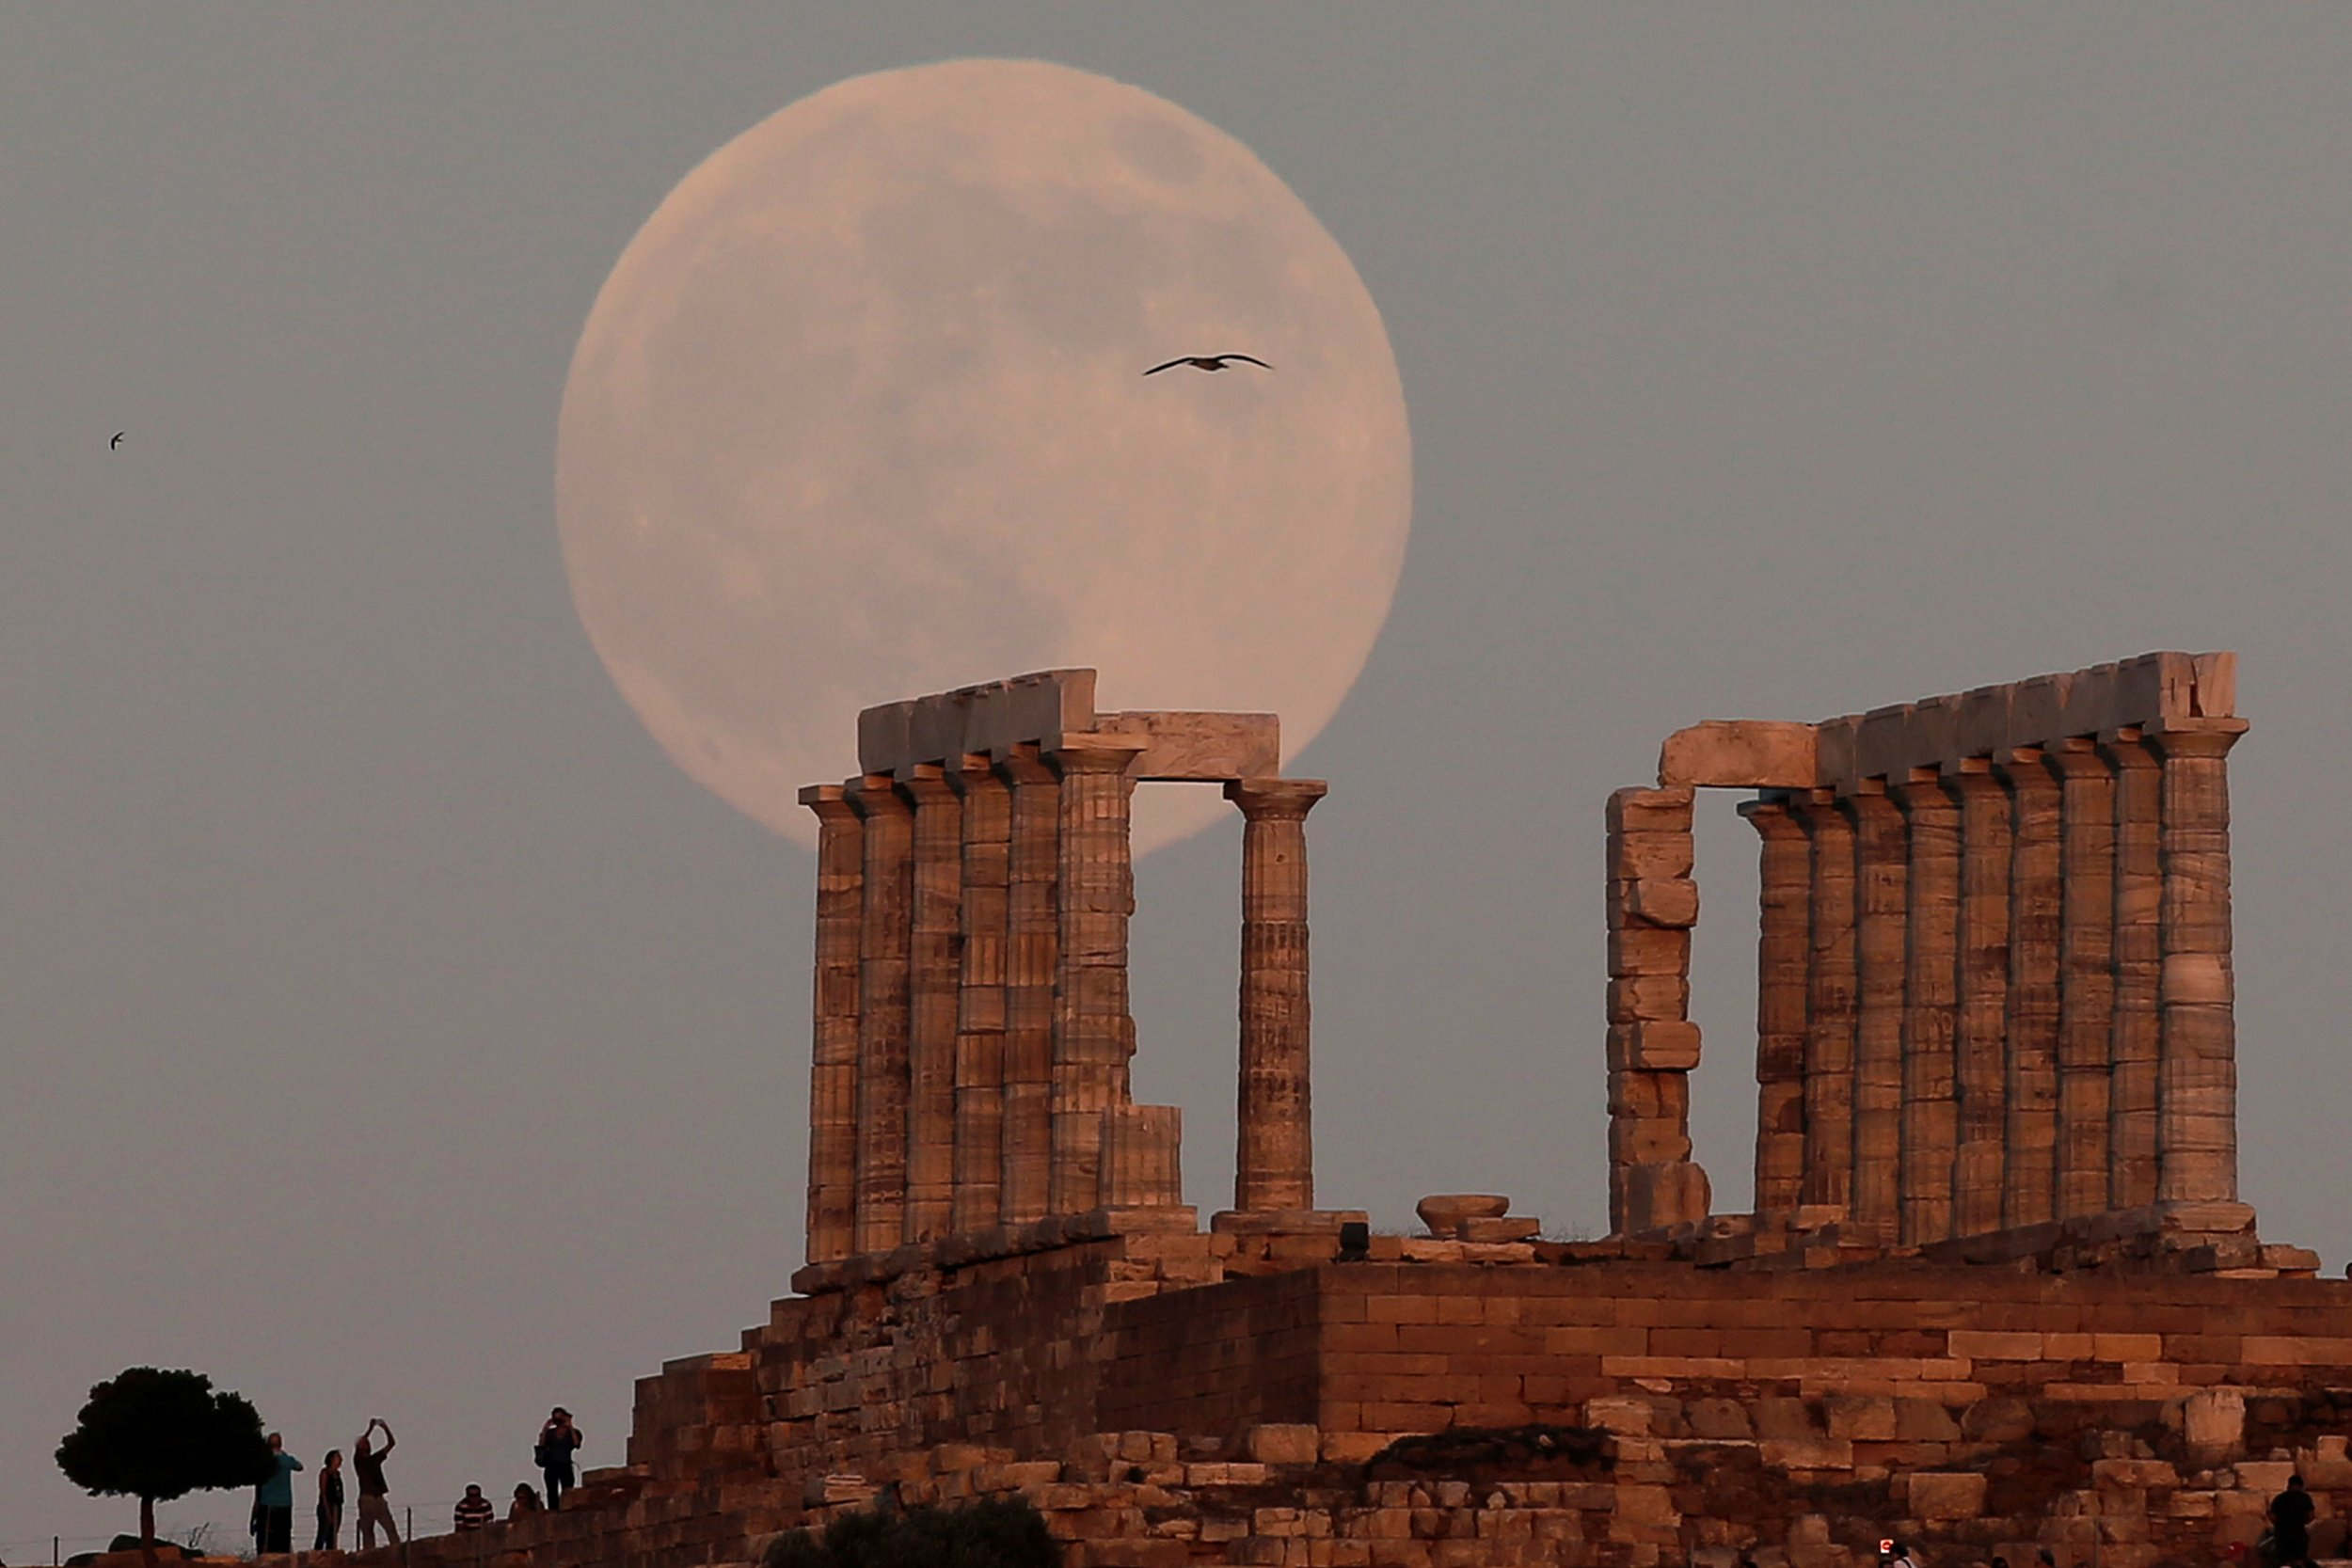 Temple of Poseidon, the ancient Greek god of the seas, east of Athens